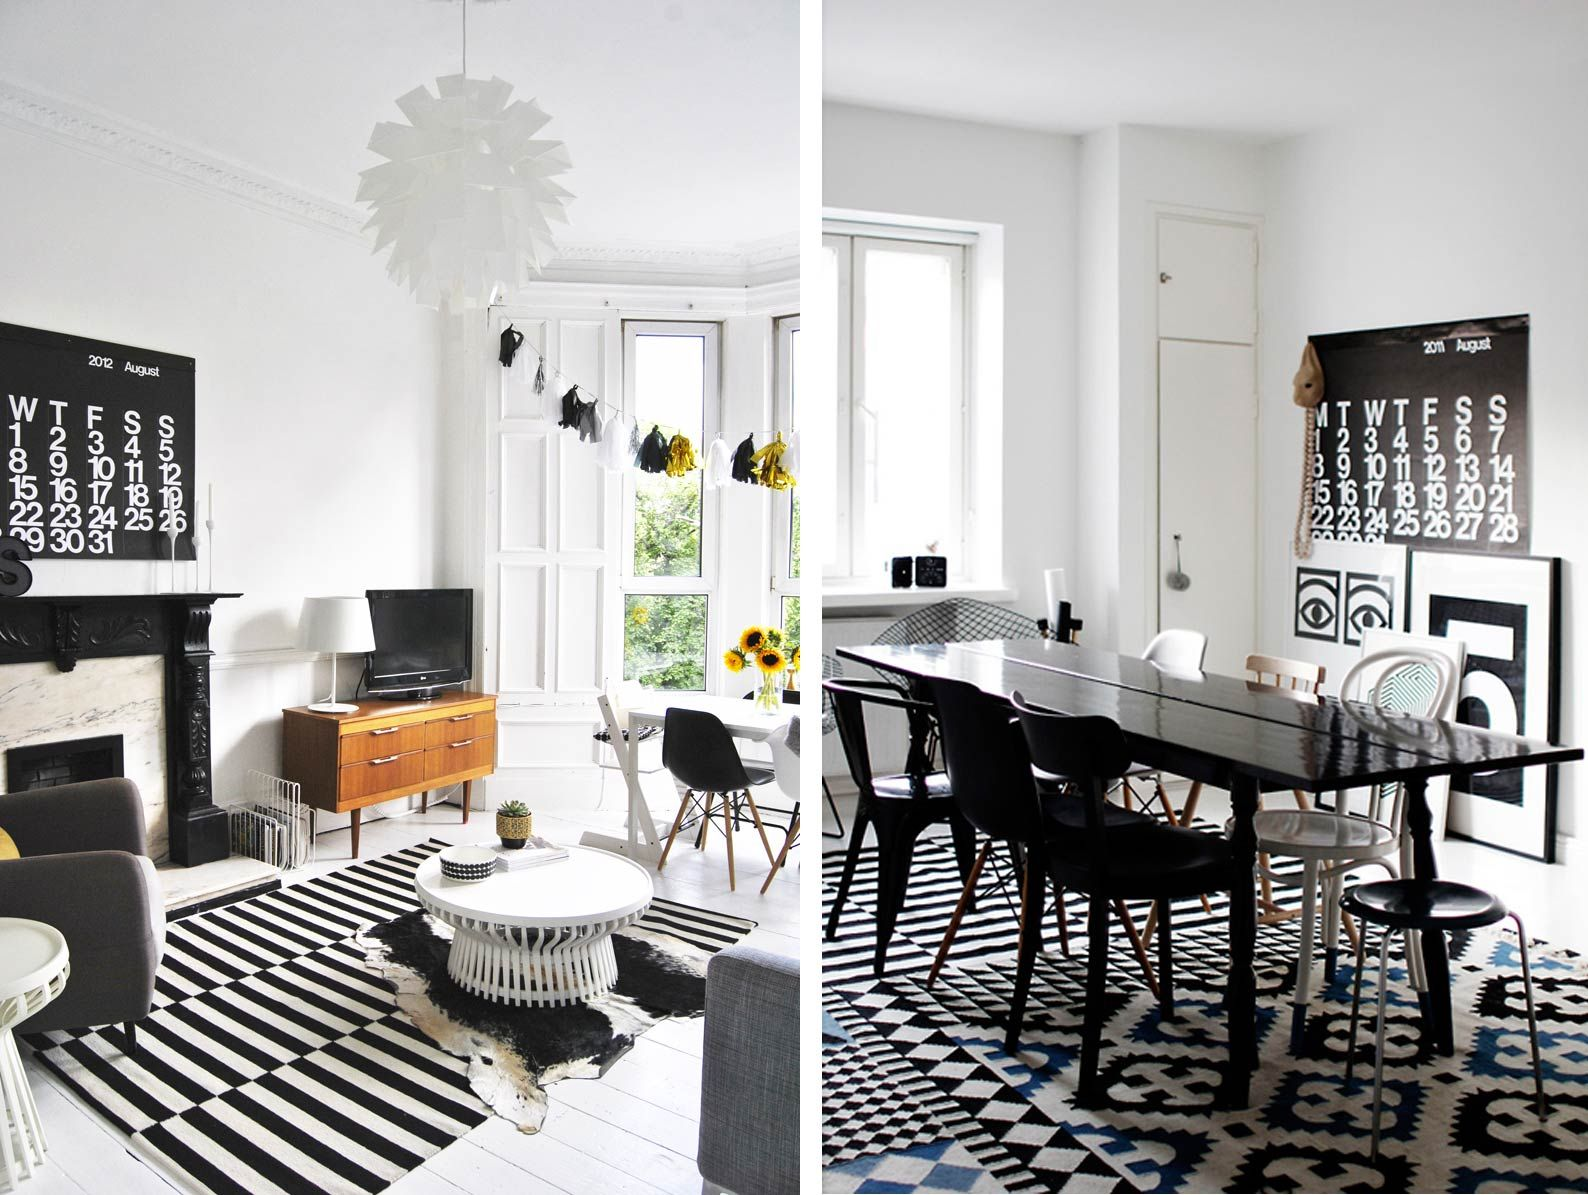 tapis graphiques en noir et blanc salon pinterest deco noir et blanc noir et blanc et noir. Black Bedroom Furniture Sets. Home Design Ideas